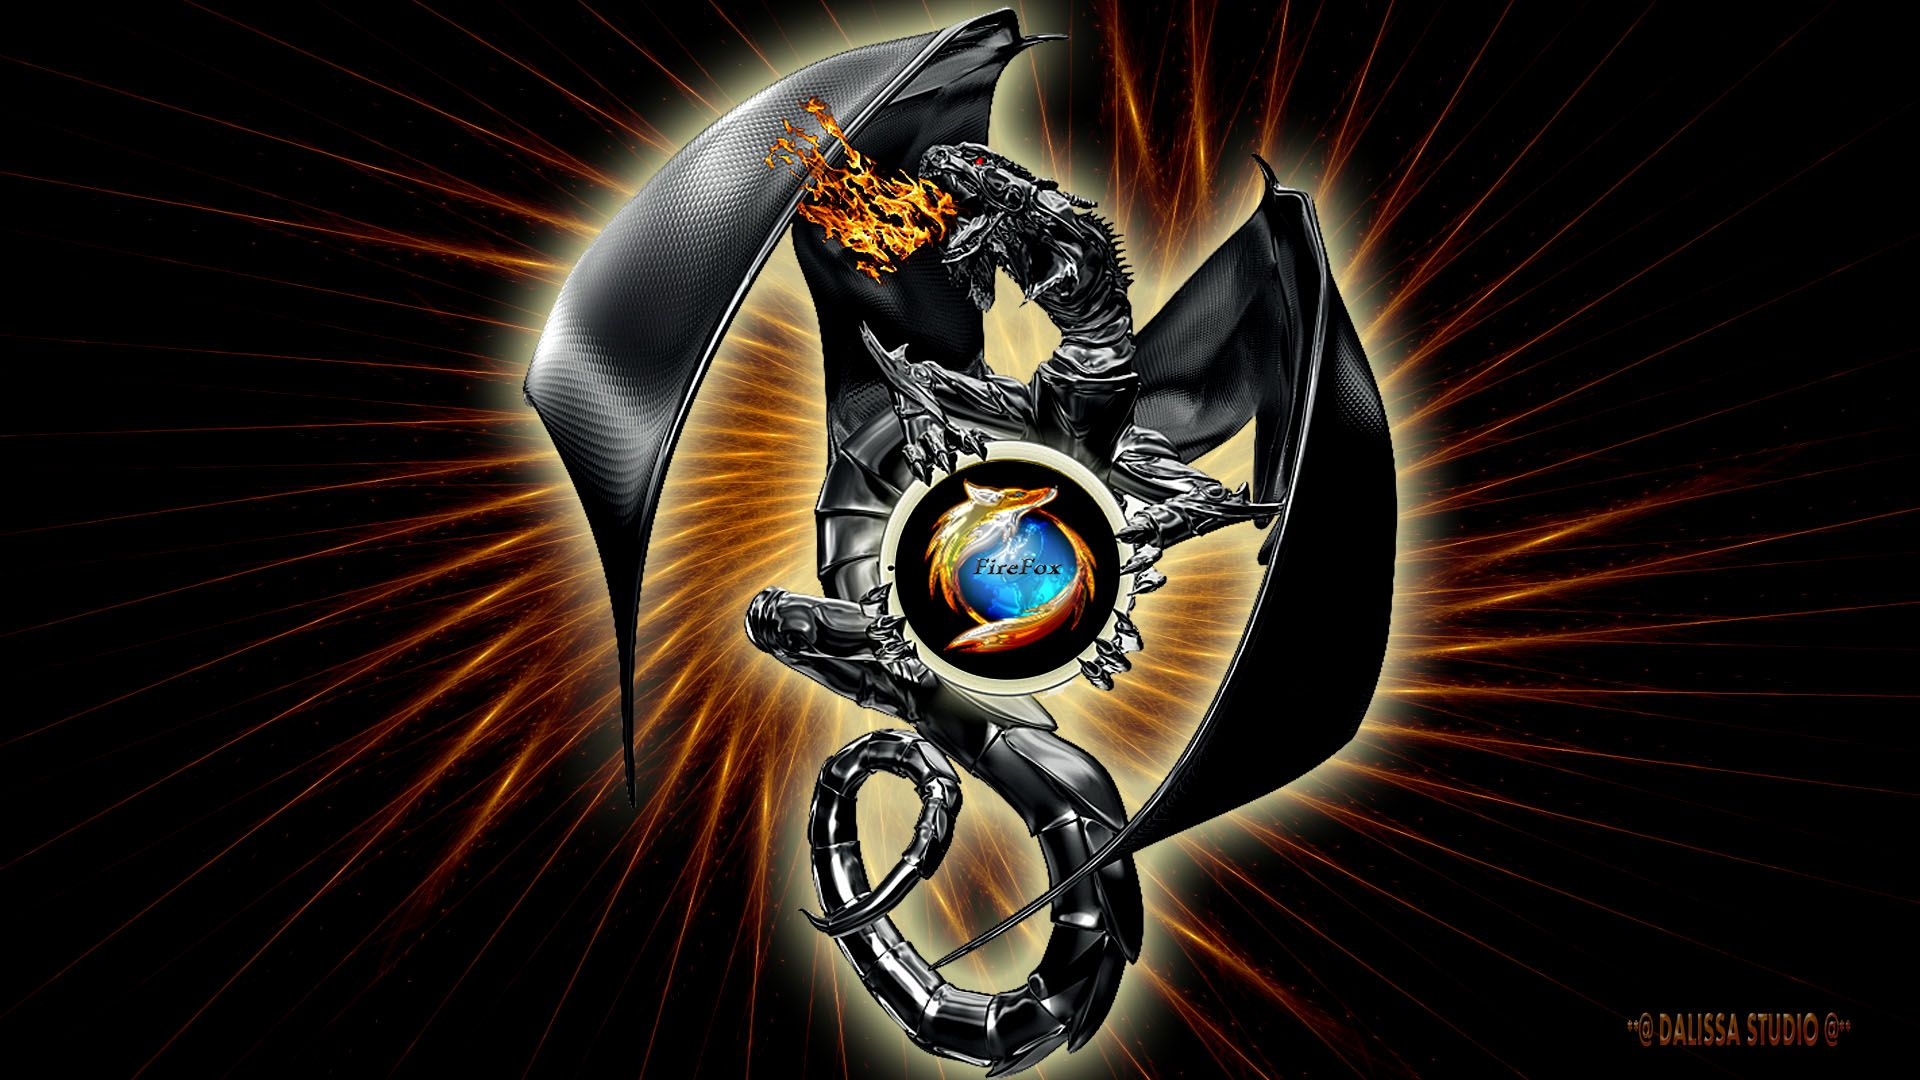 2020 Other | Images: Dragon Wallpapers For Windows 7